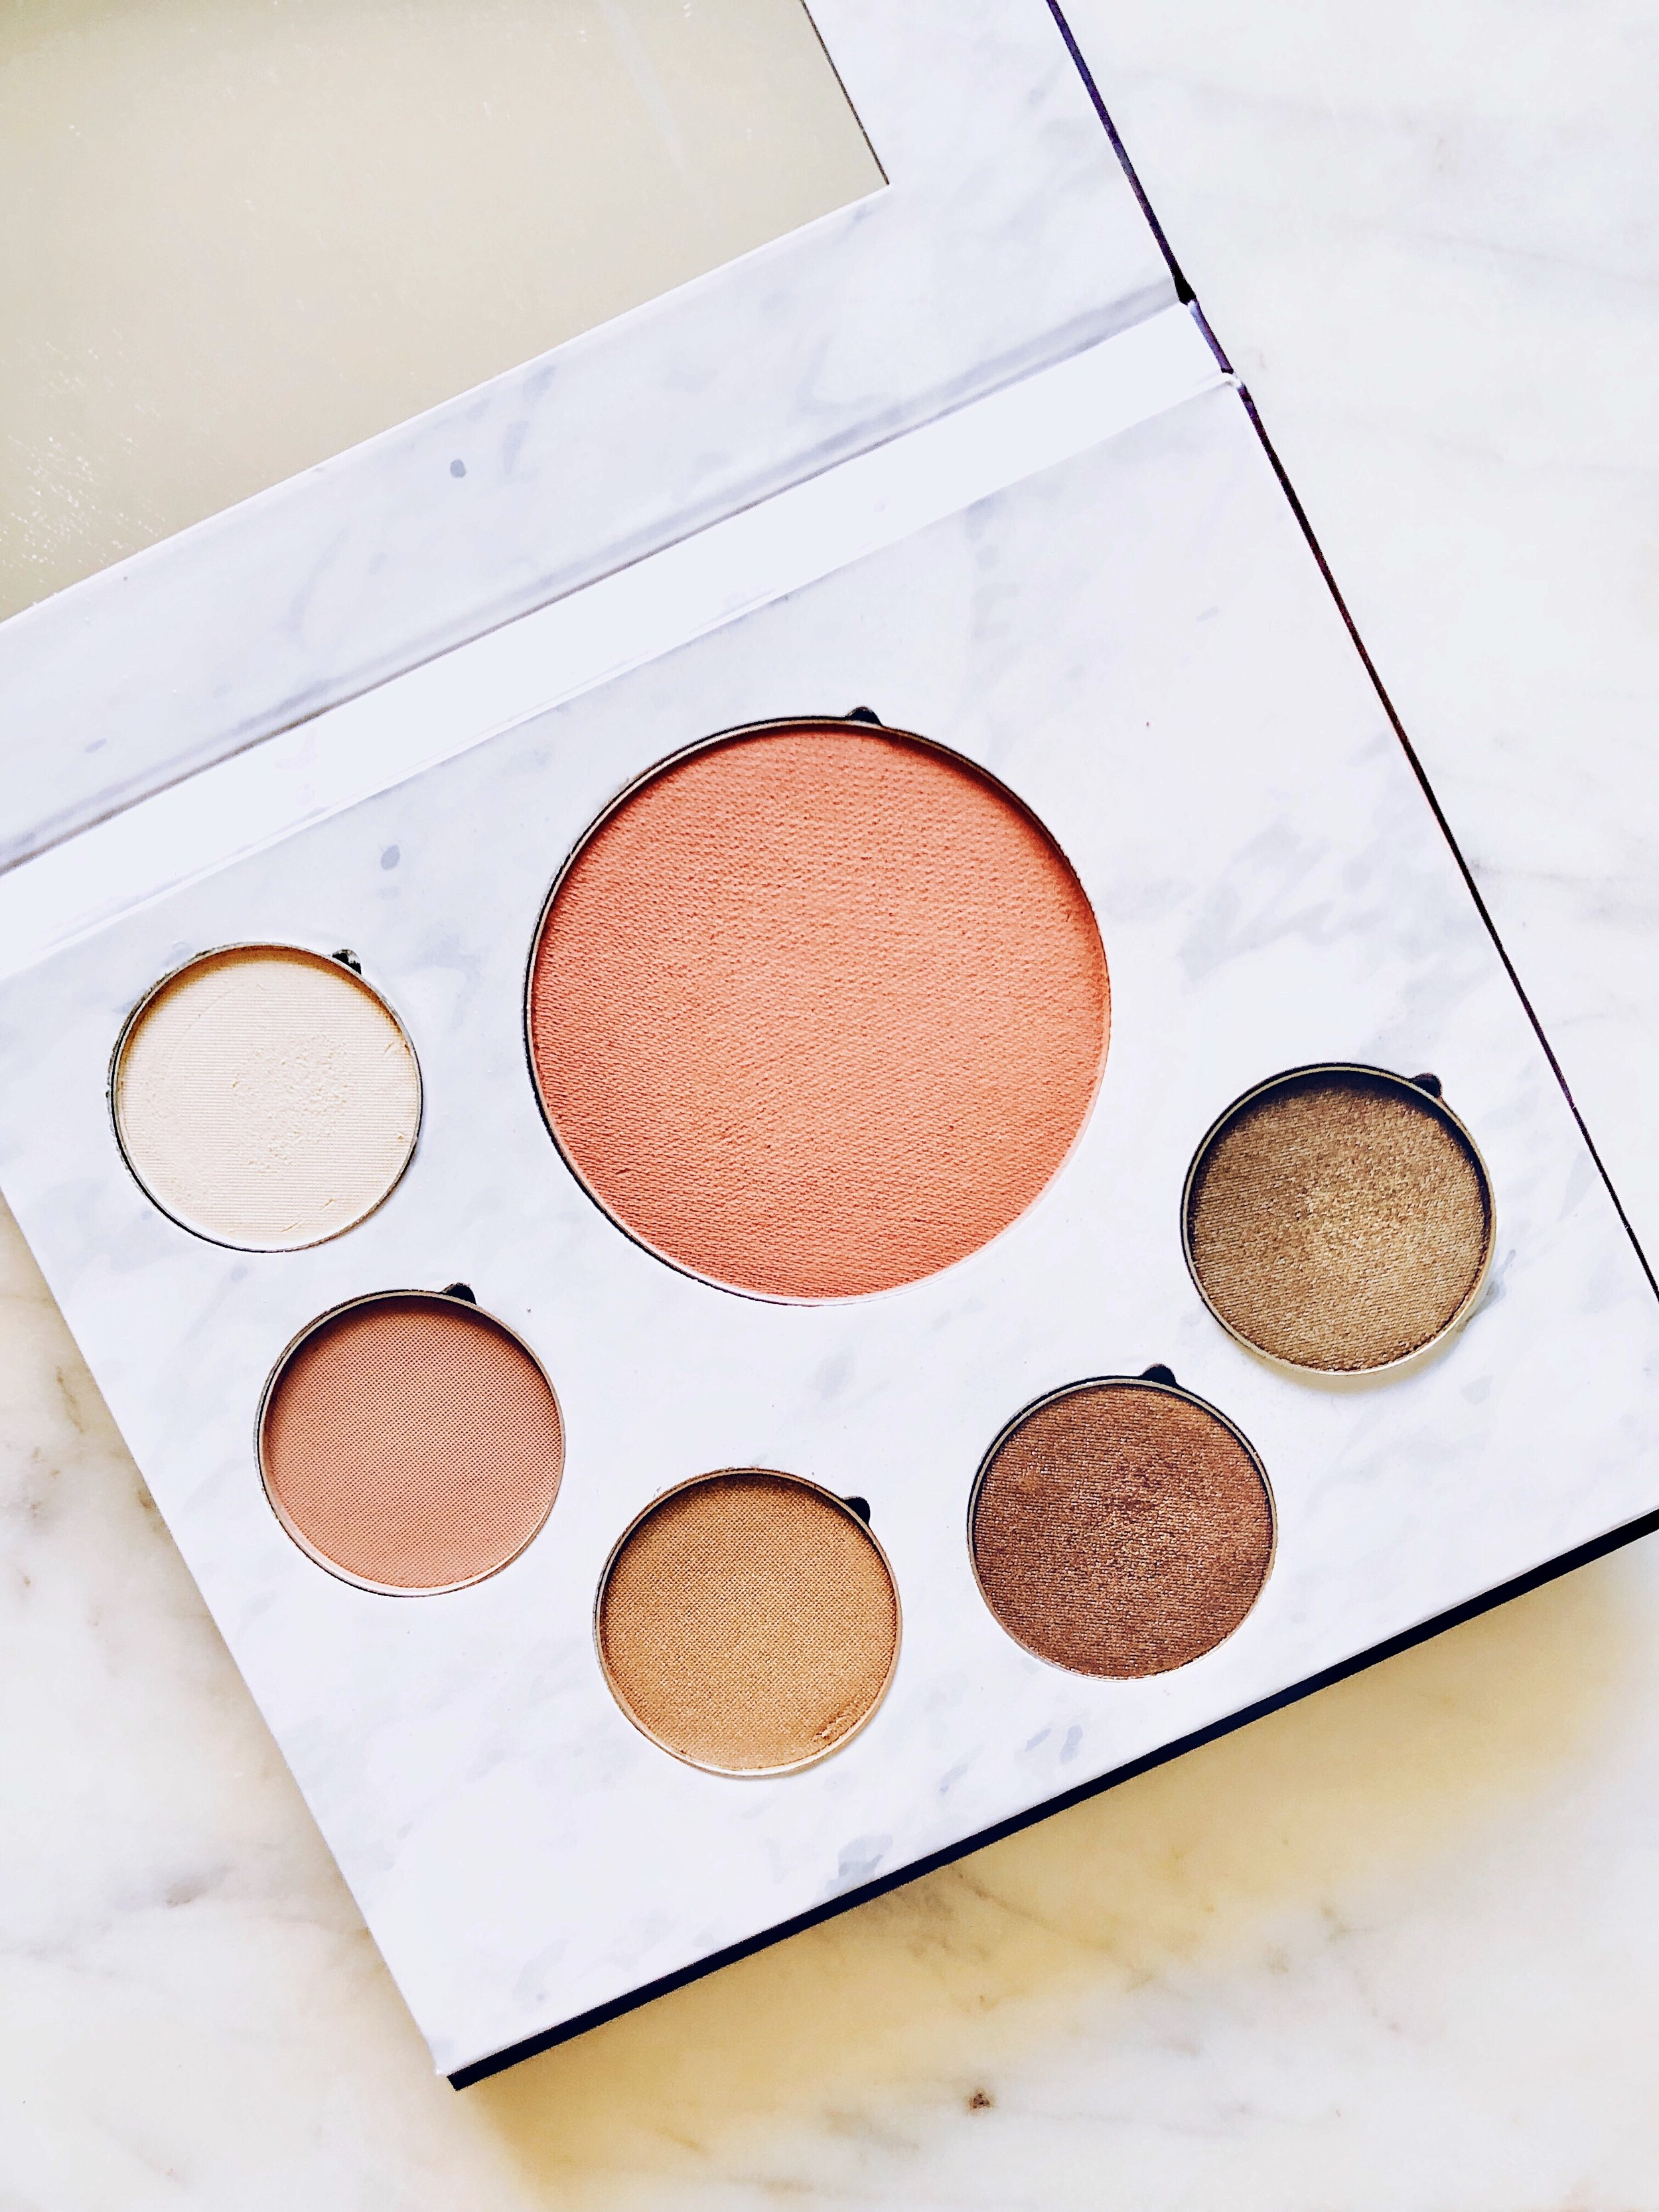 Fitglow Beauty Nights Makeup Palette- $69.00: - Here's the quick SCORECARD breakdown. Each question is rated on a scale of 1 to 5, 5being the best:1. How do the ingredients look? What's inside?- Great! See below for any call outs.2. How is pigment and color payoff?- 5: Wow. The color payoff is amazing, truly.3. How is application?- 5: This shadow applies like a dream. Very little fallout and blends in well.4. Is it non-irritating?- 5: No issues here!5. Does it crease?- 4: I experienced limited to no creasing with this shadow, even without primer. I am so impressed!6. Does the color last all day? 5- Yes. The full-day wear tests were SO successful!7. Is this a consciously-created product?- 4: Vegan, cruelty-free, silicone-free, recyclable (EXCEPT for the mirror unfortunately).FINAL SCORE:28/30